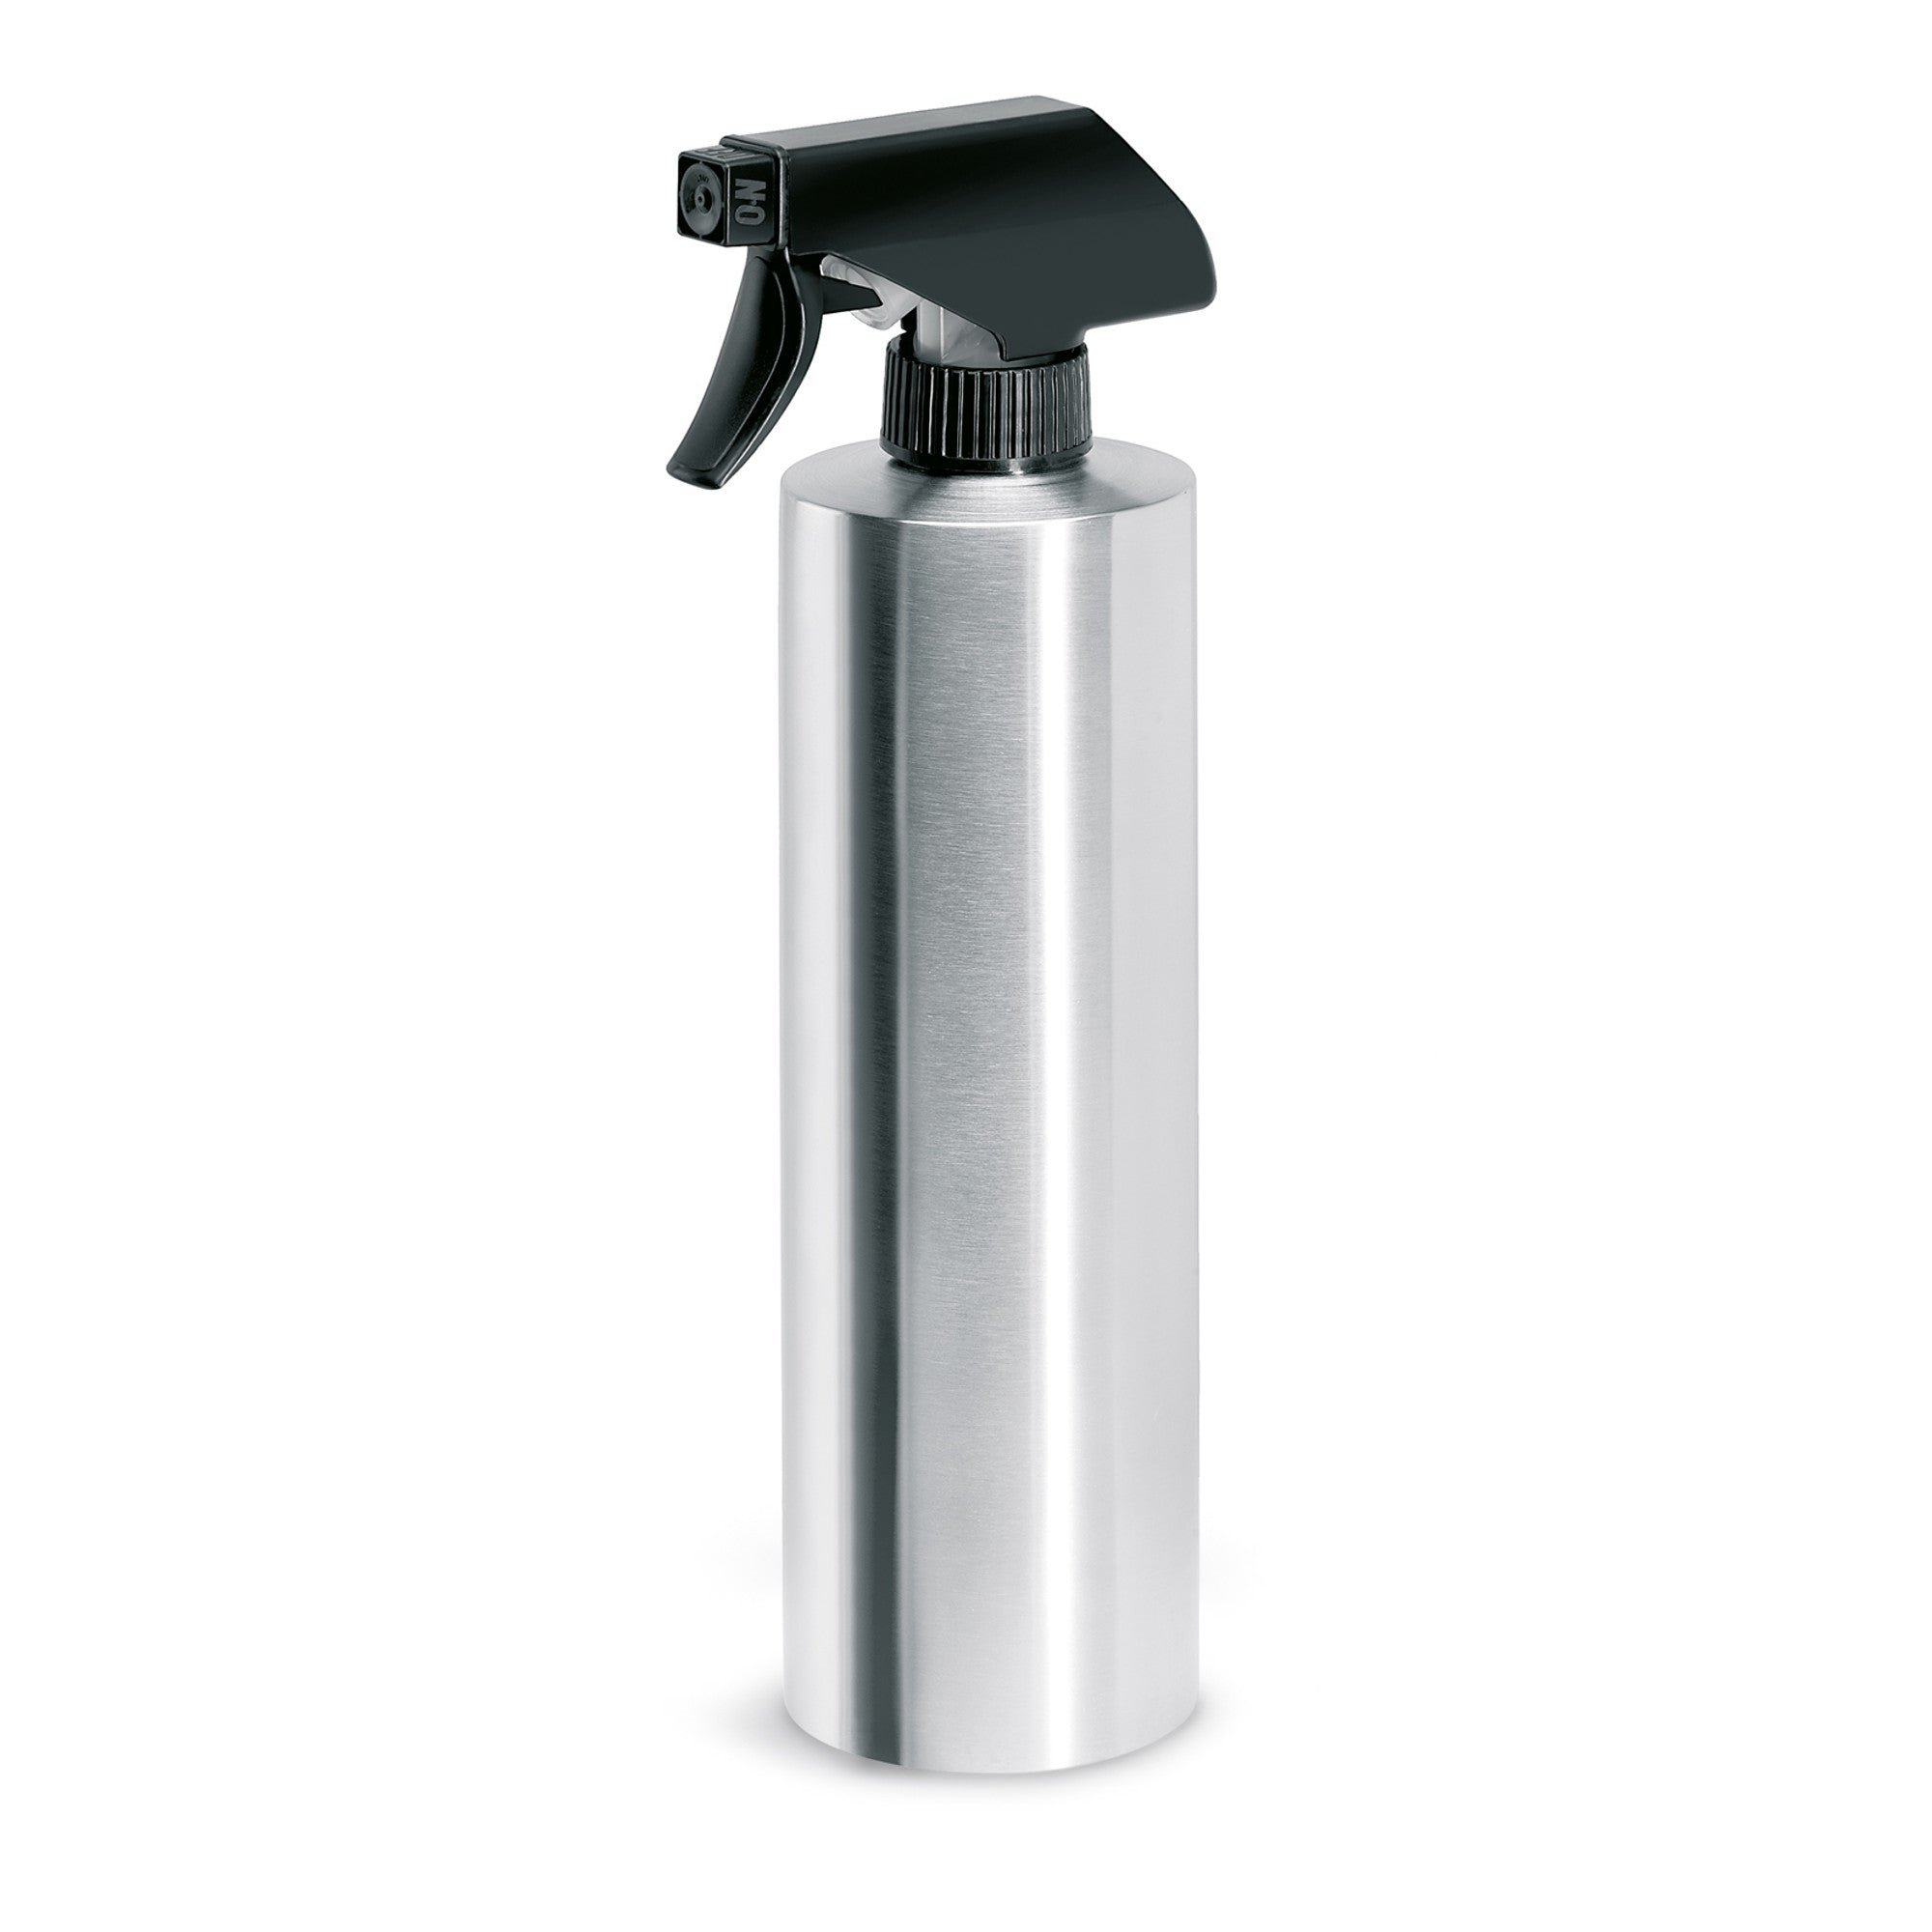 Blomus Greens Stainless Steel Spray Bottle / Plant Mister